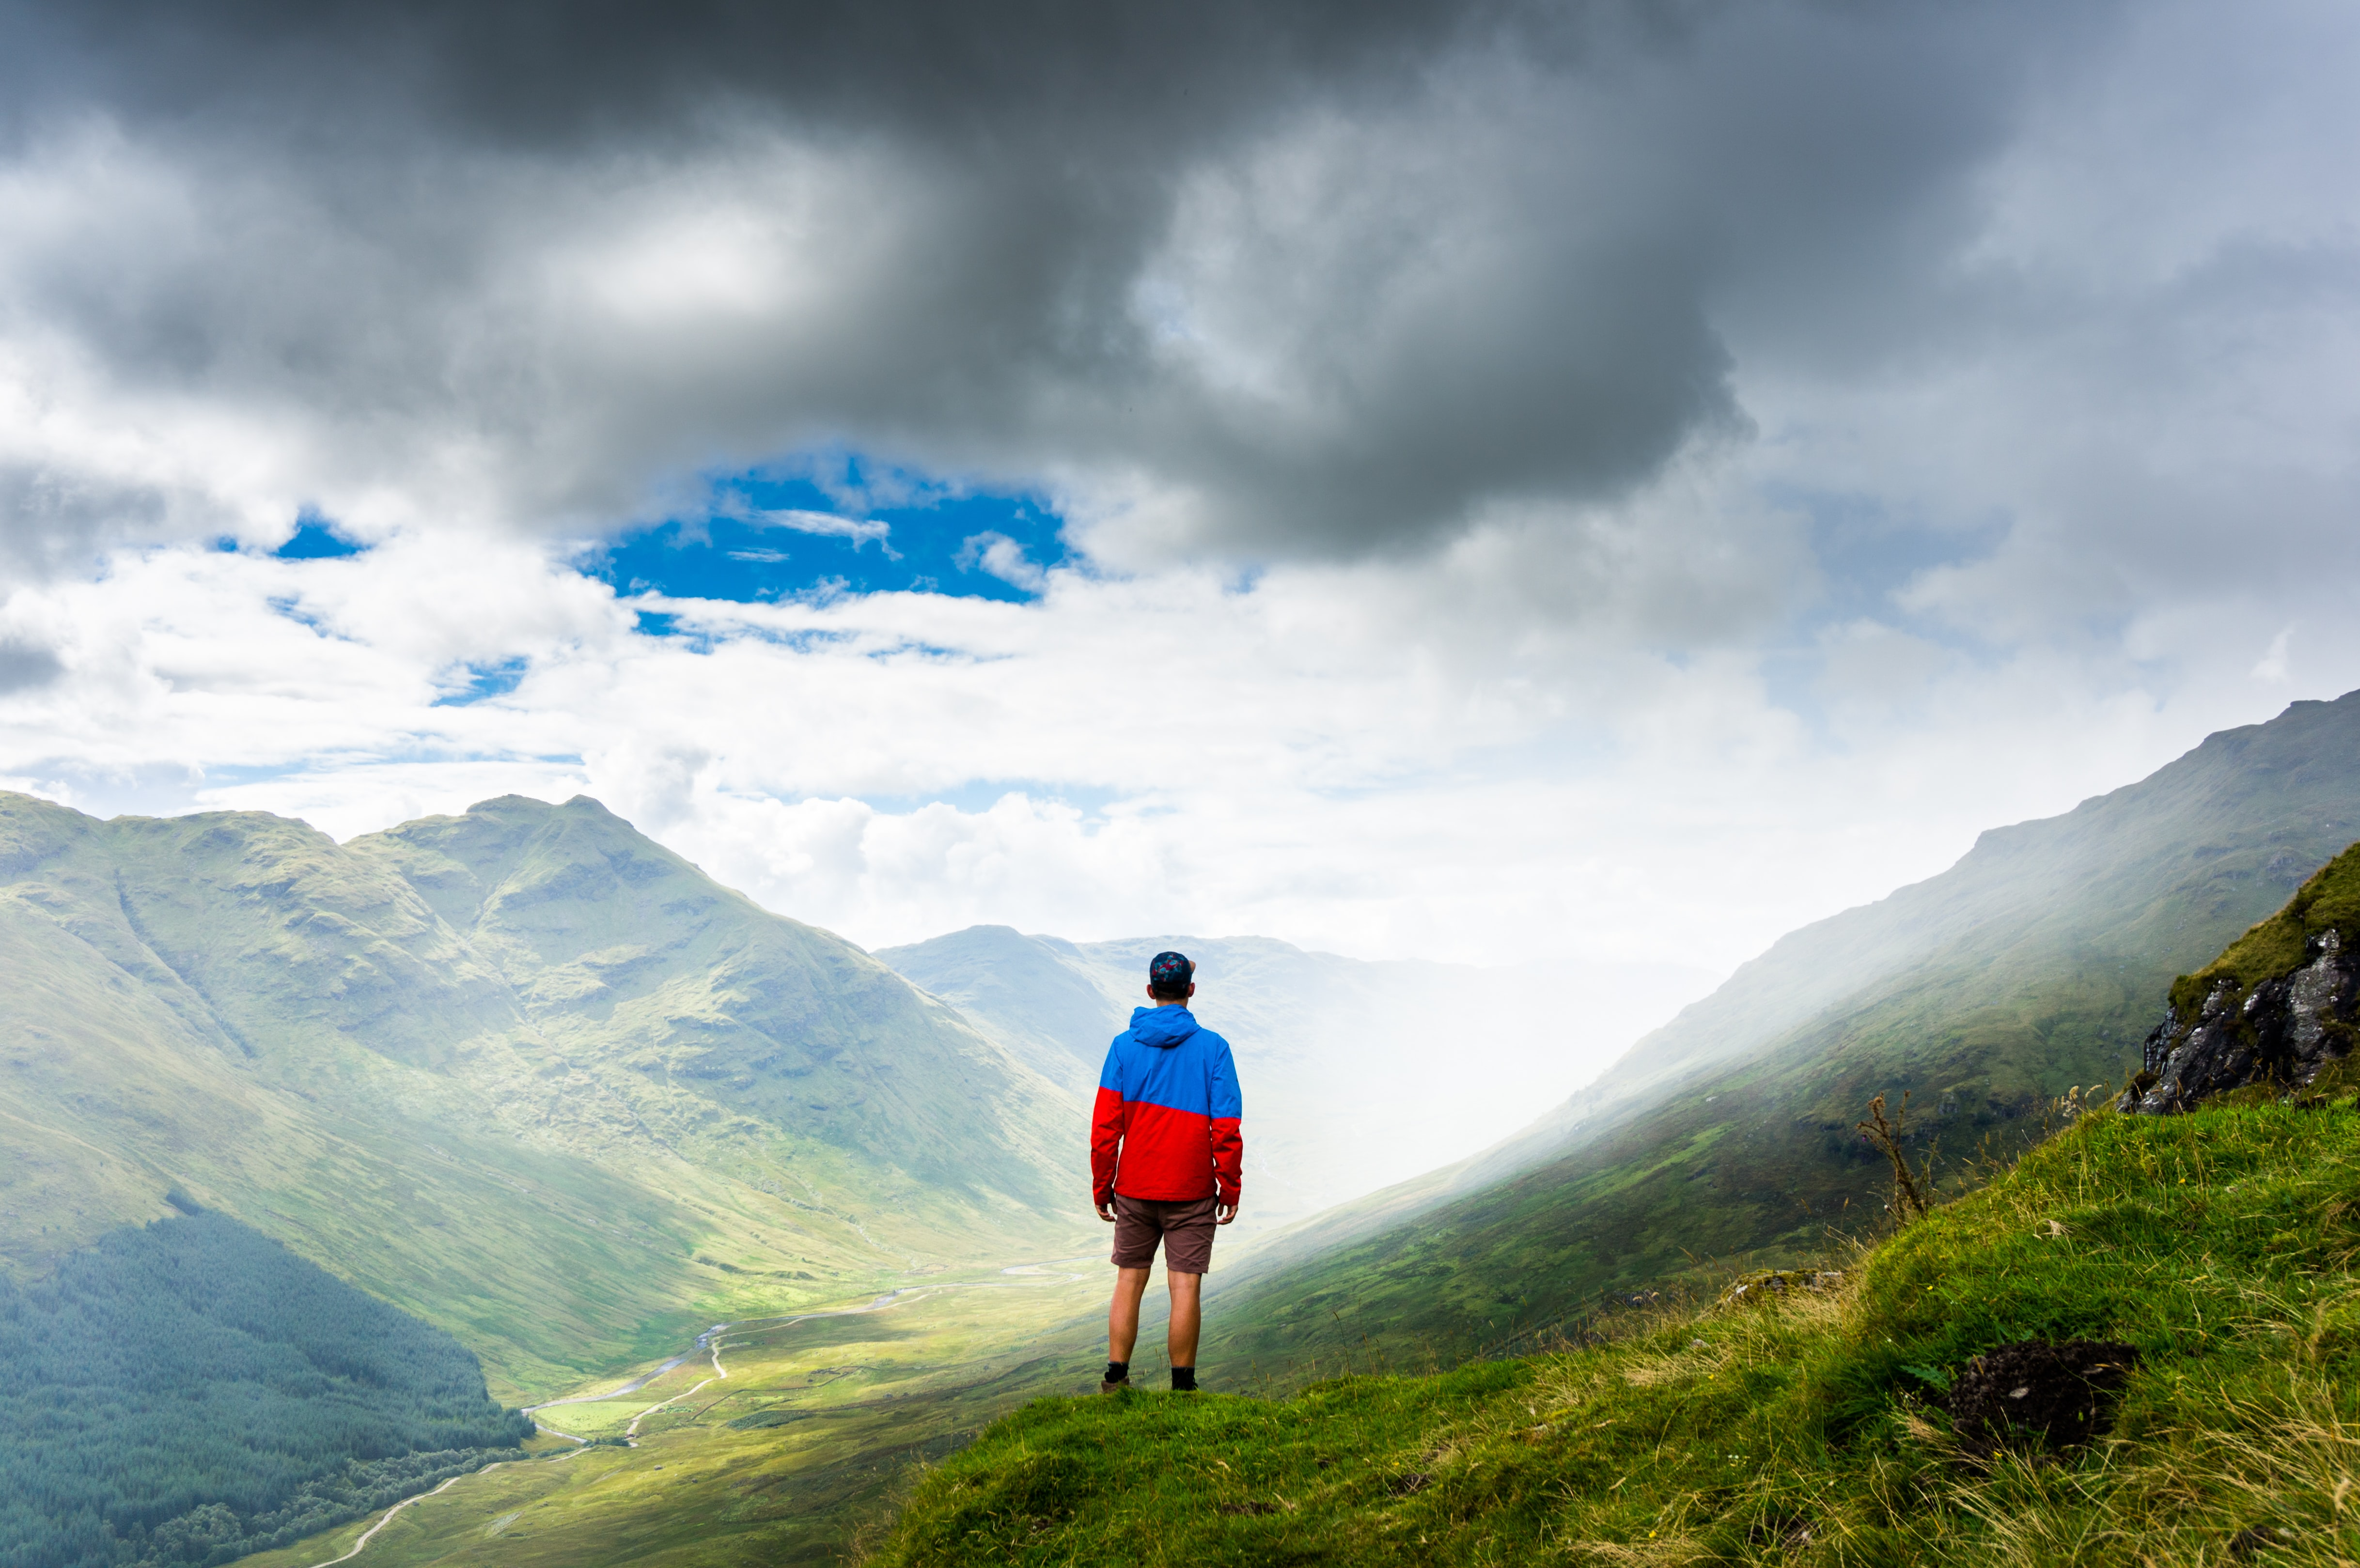 A man wearing a hat, a black and red jacket, and shorts standing on a grassy mountain in Inverlochlarig Farm